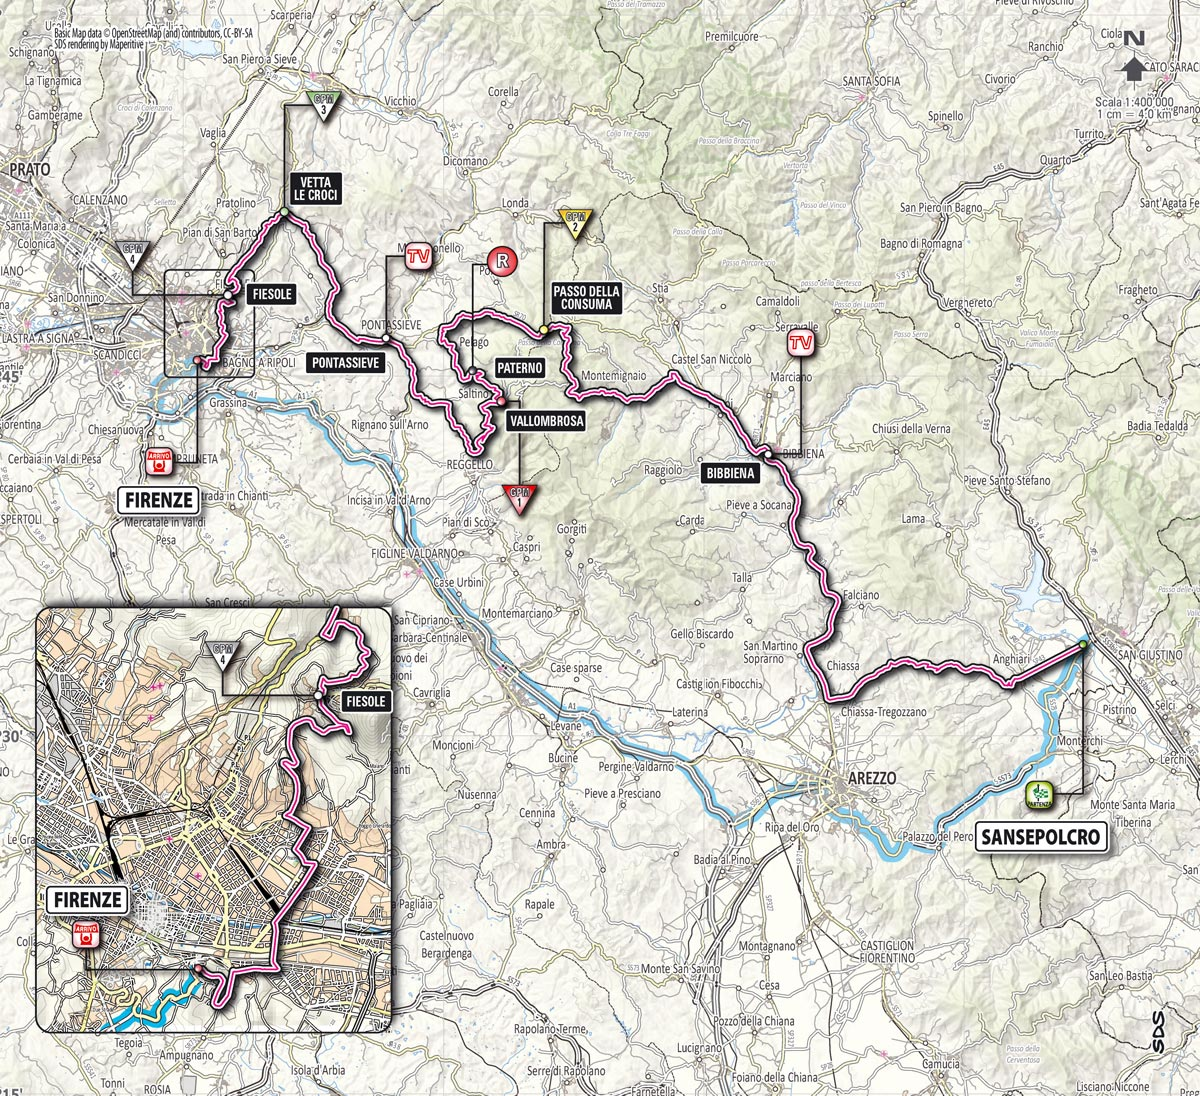 Giro d'Italia 2013 Stage 9 map